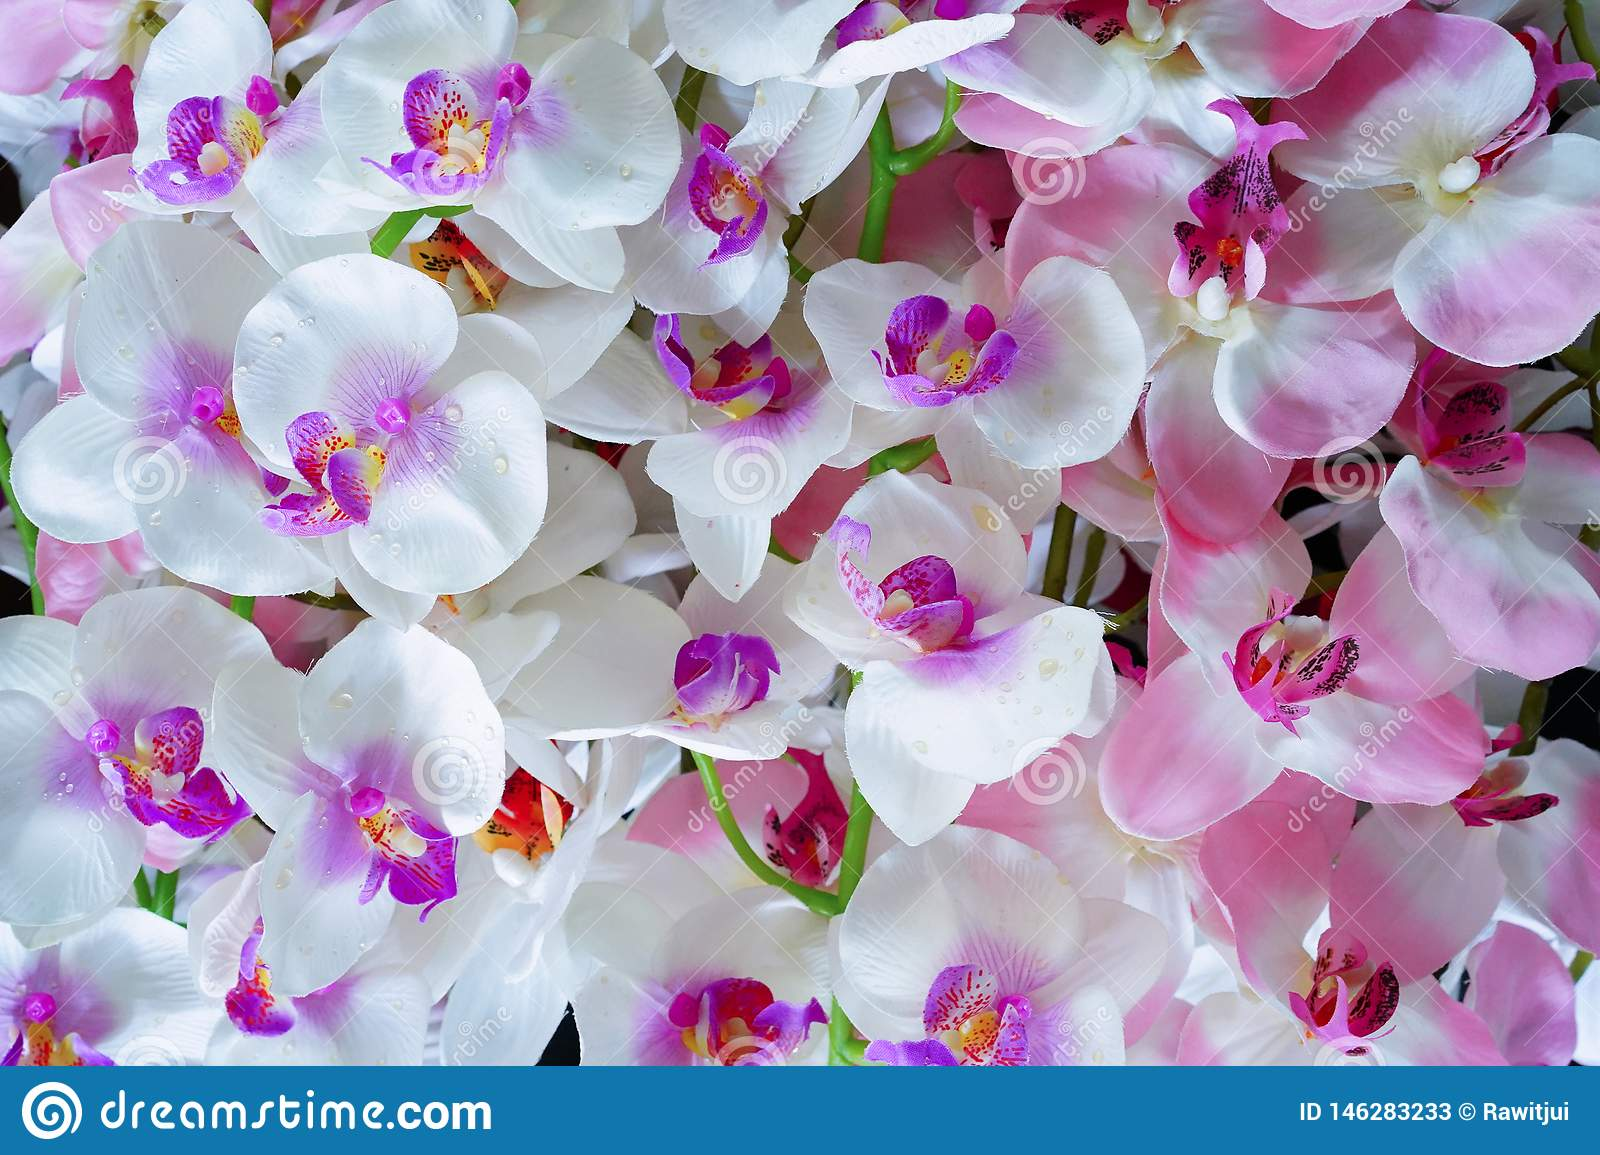 Artificial white and pink orchid flowers